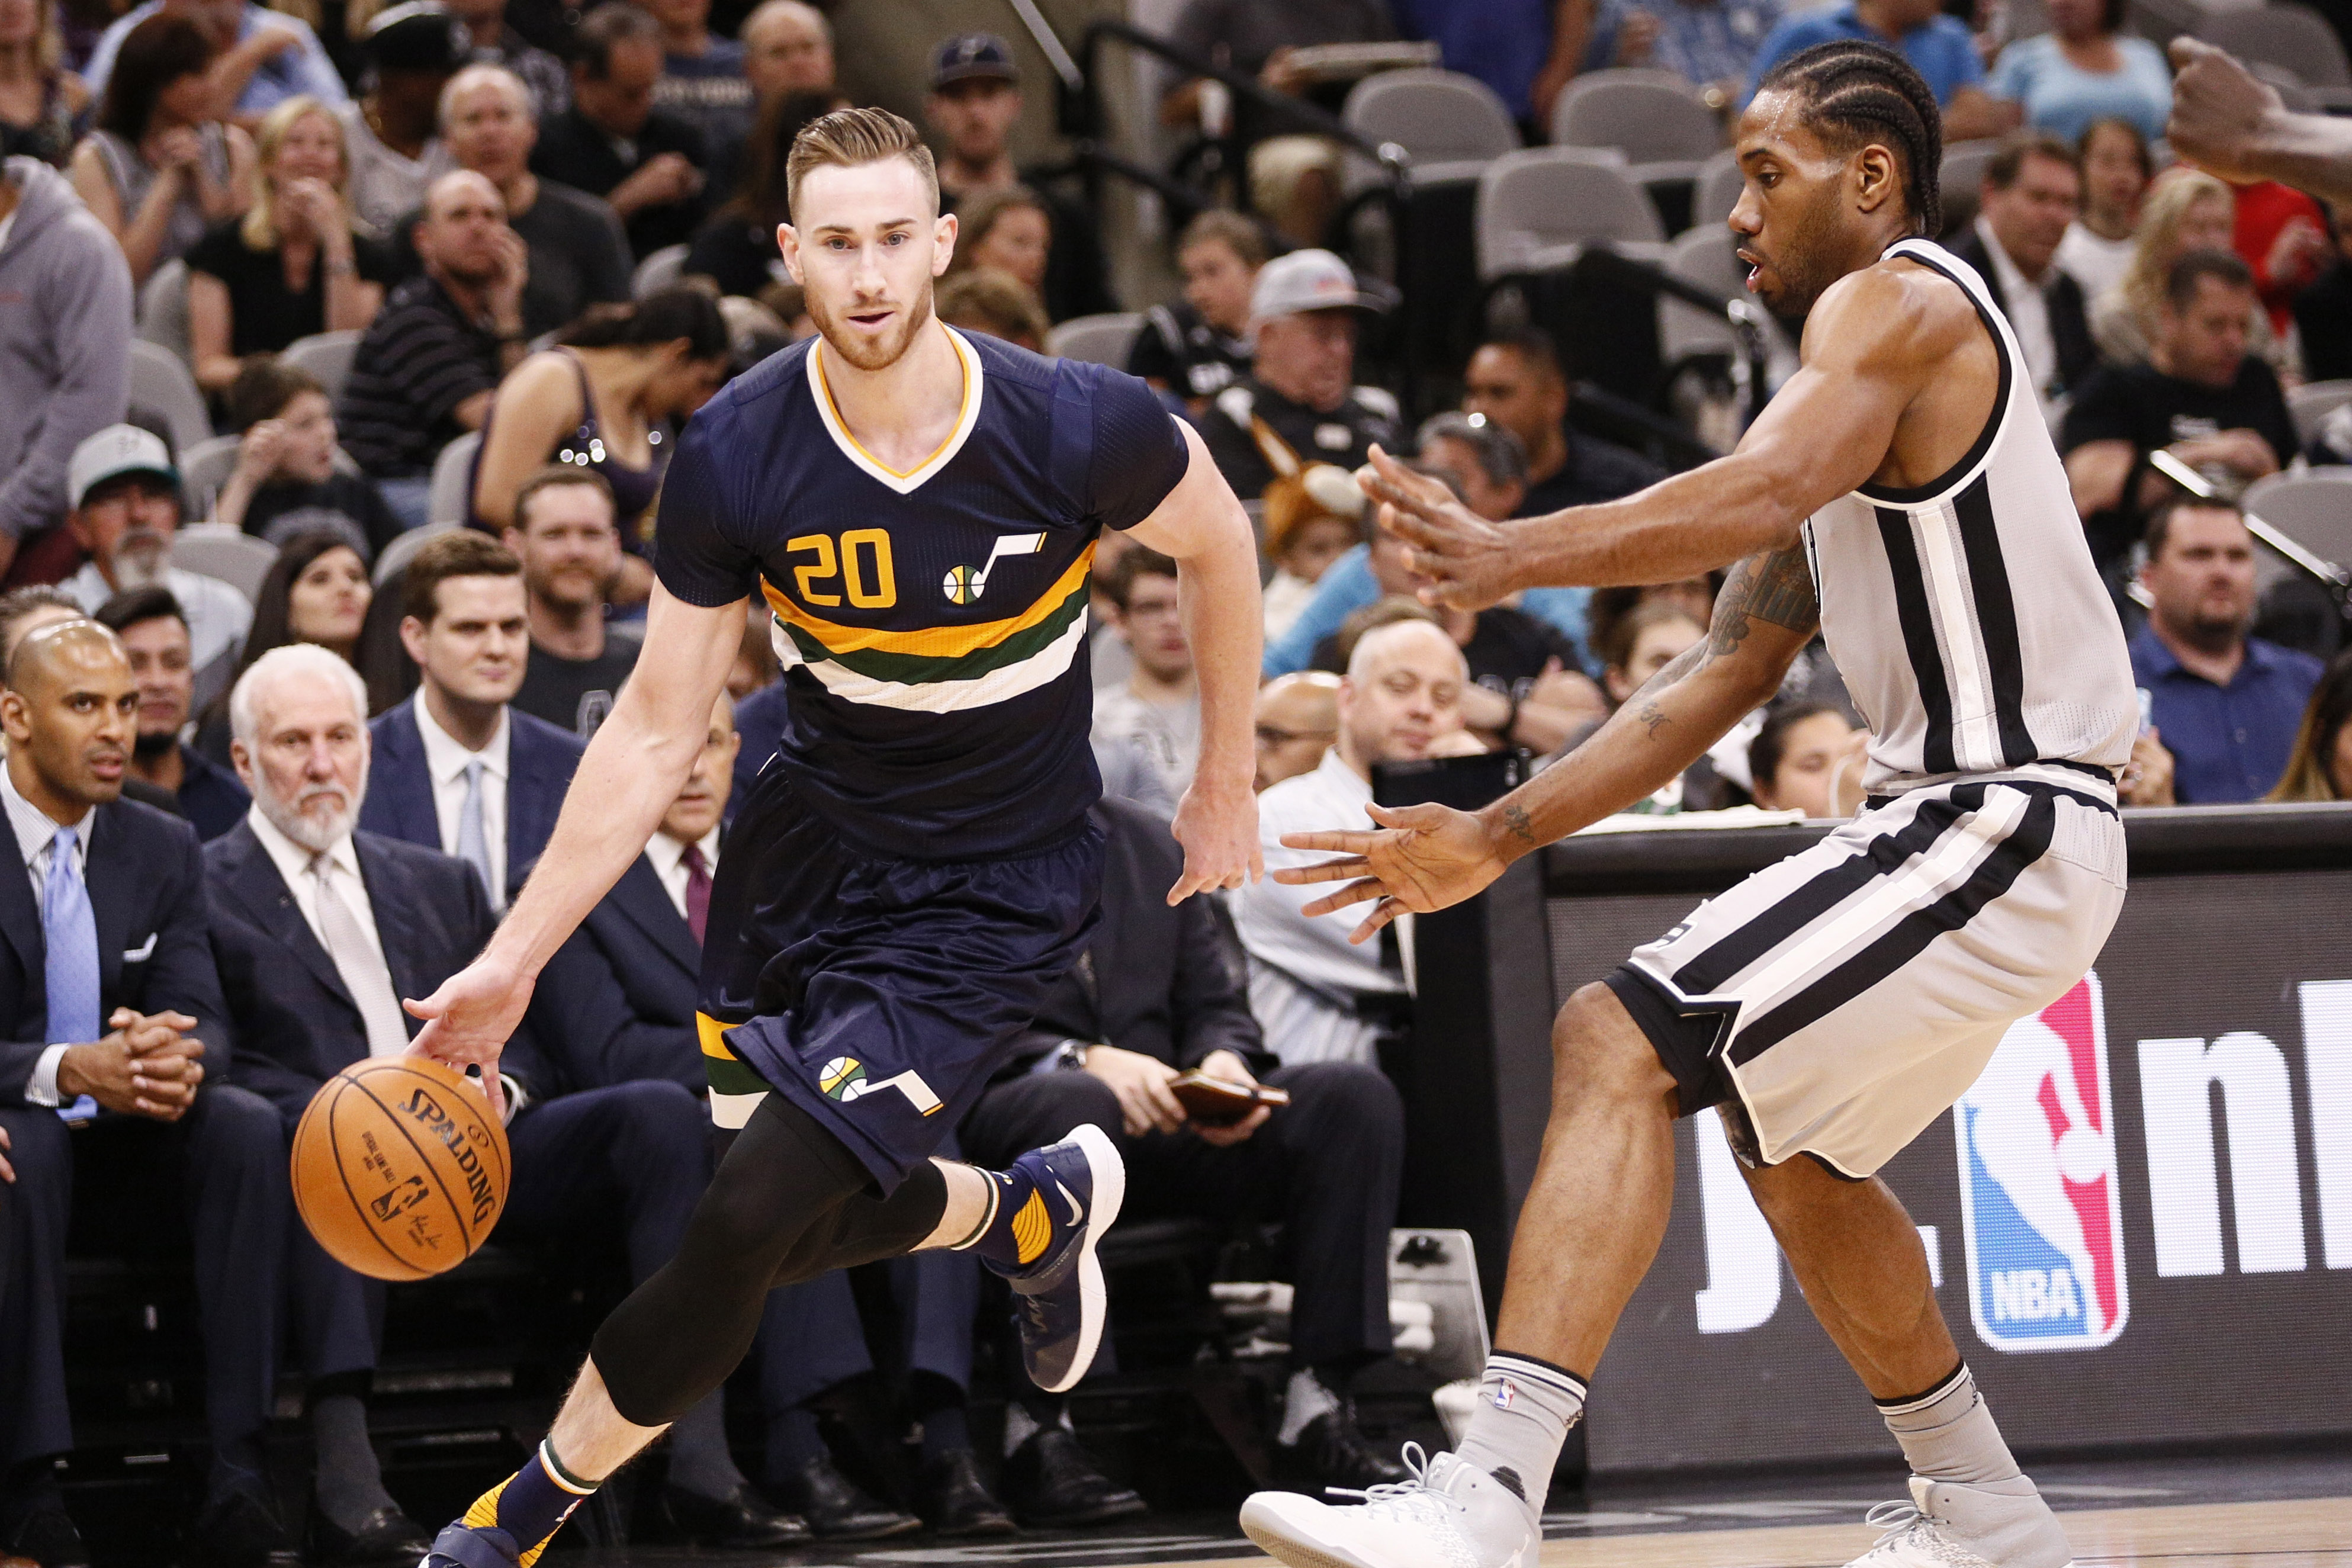 9987611-nba-utah-jazz-at-san-antonio-spurs